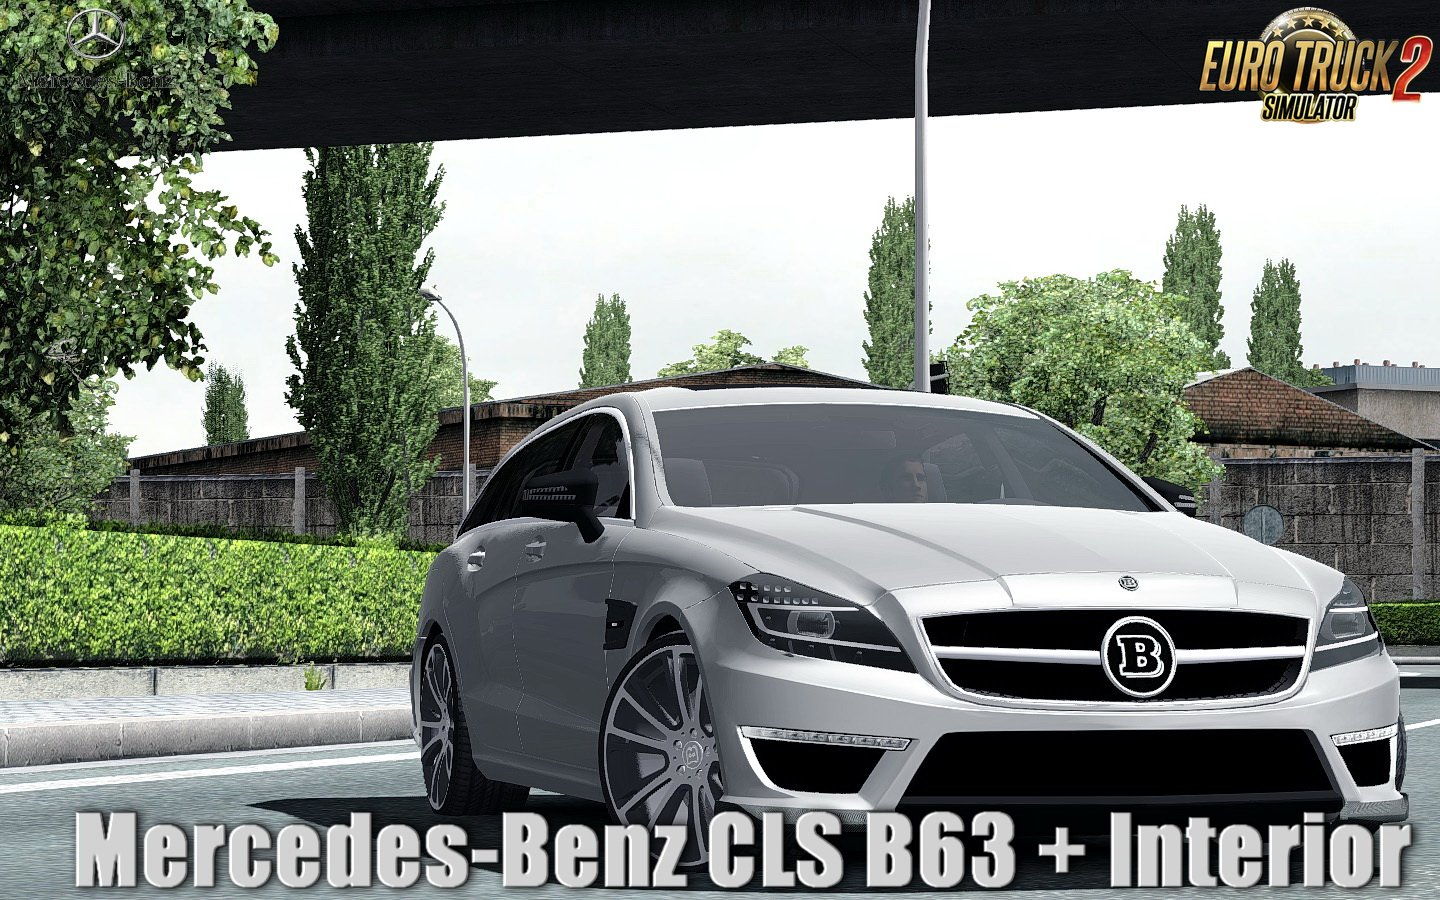 Mercedes-Benz CLS B63 + Interior v1.0 (1.31.x)